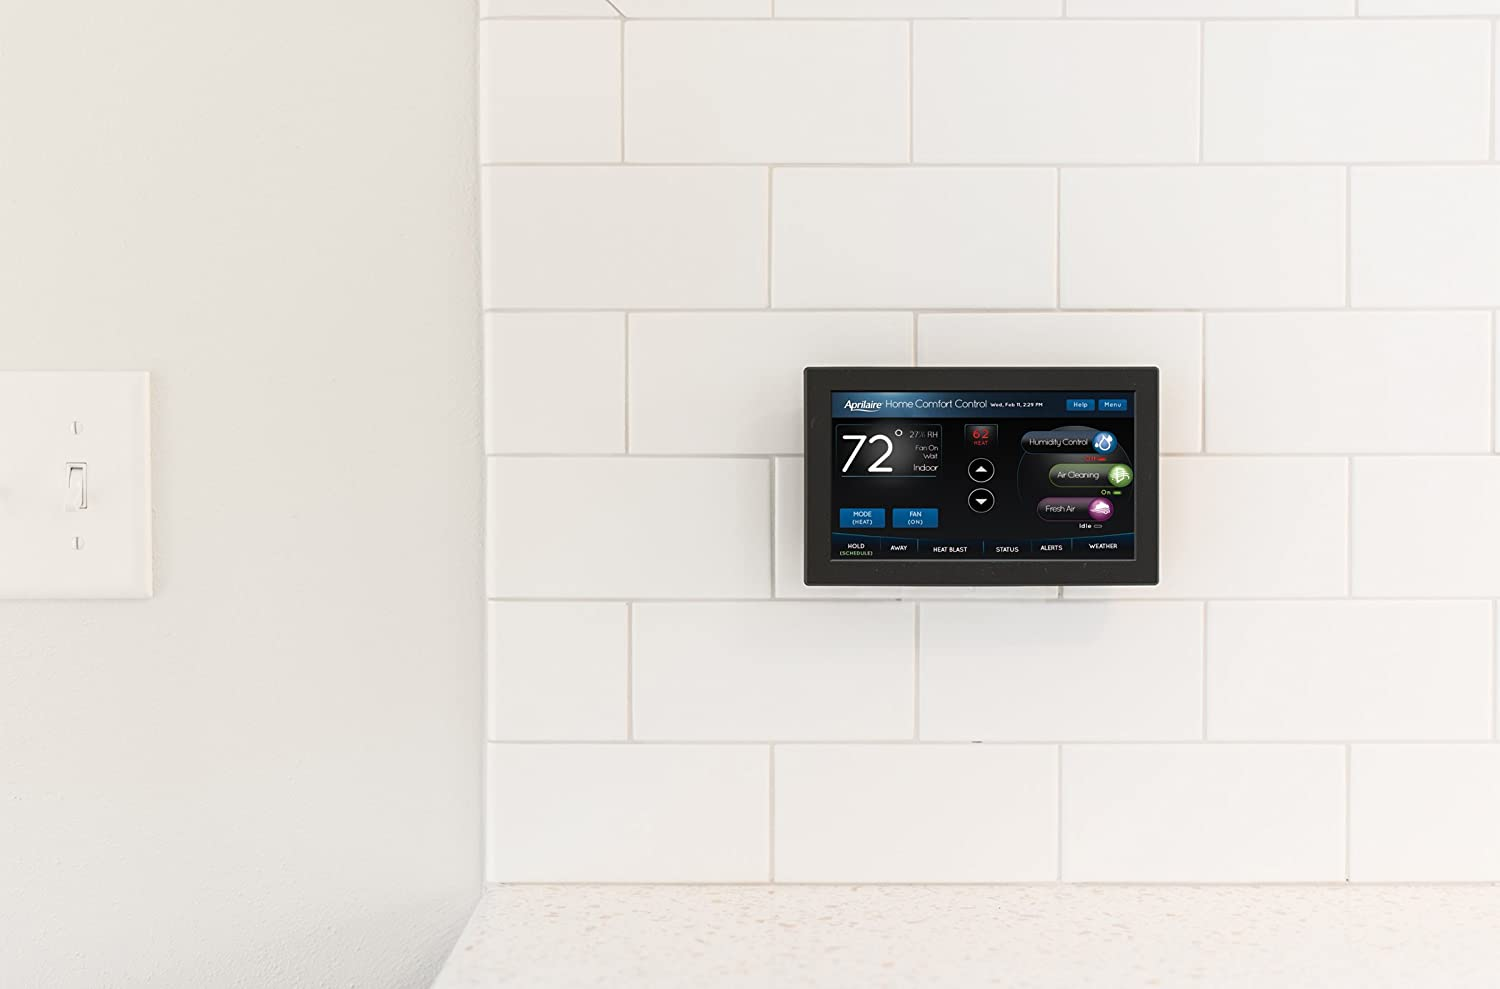 Aprilaire 8920w Color Touch Screen Wi Fi Iaq Thermostat Works With Wiring Diagram Alexa Home Improvement